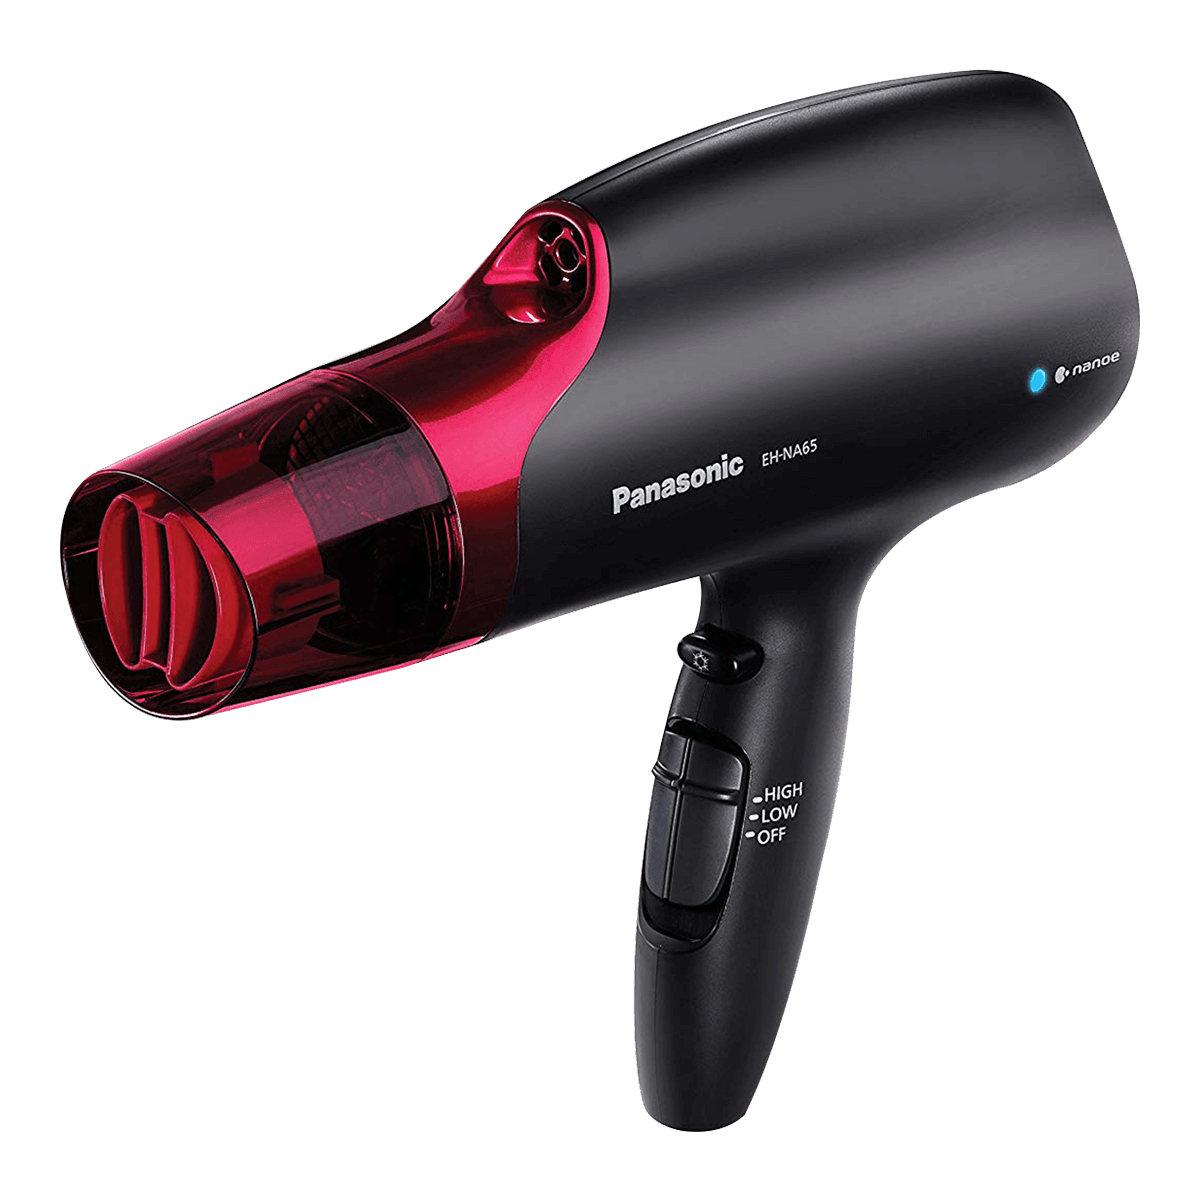 Yamibuy.com:Customer reviews:PANASONIC Nanoe Hair Dryer EH-NA65